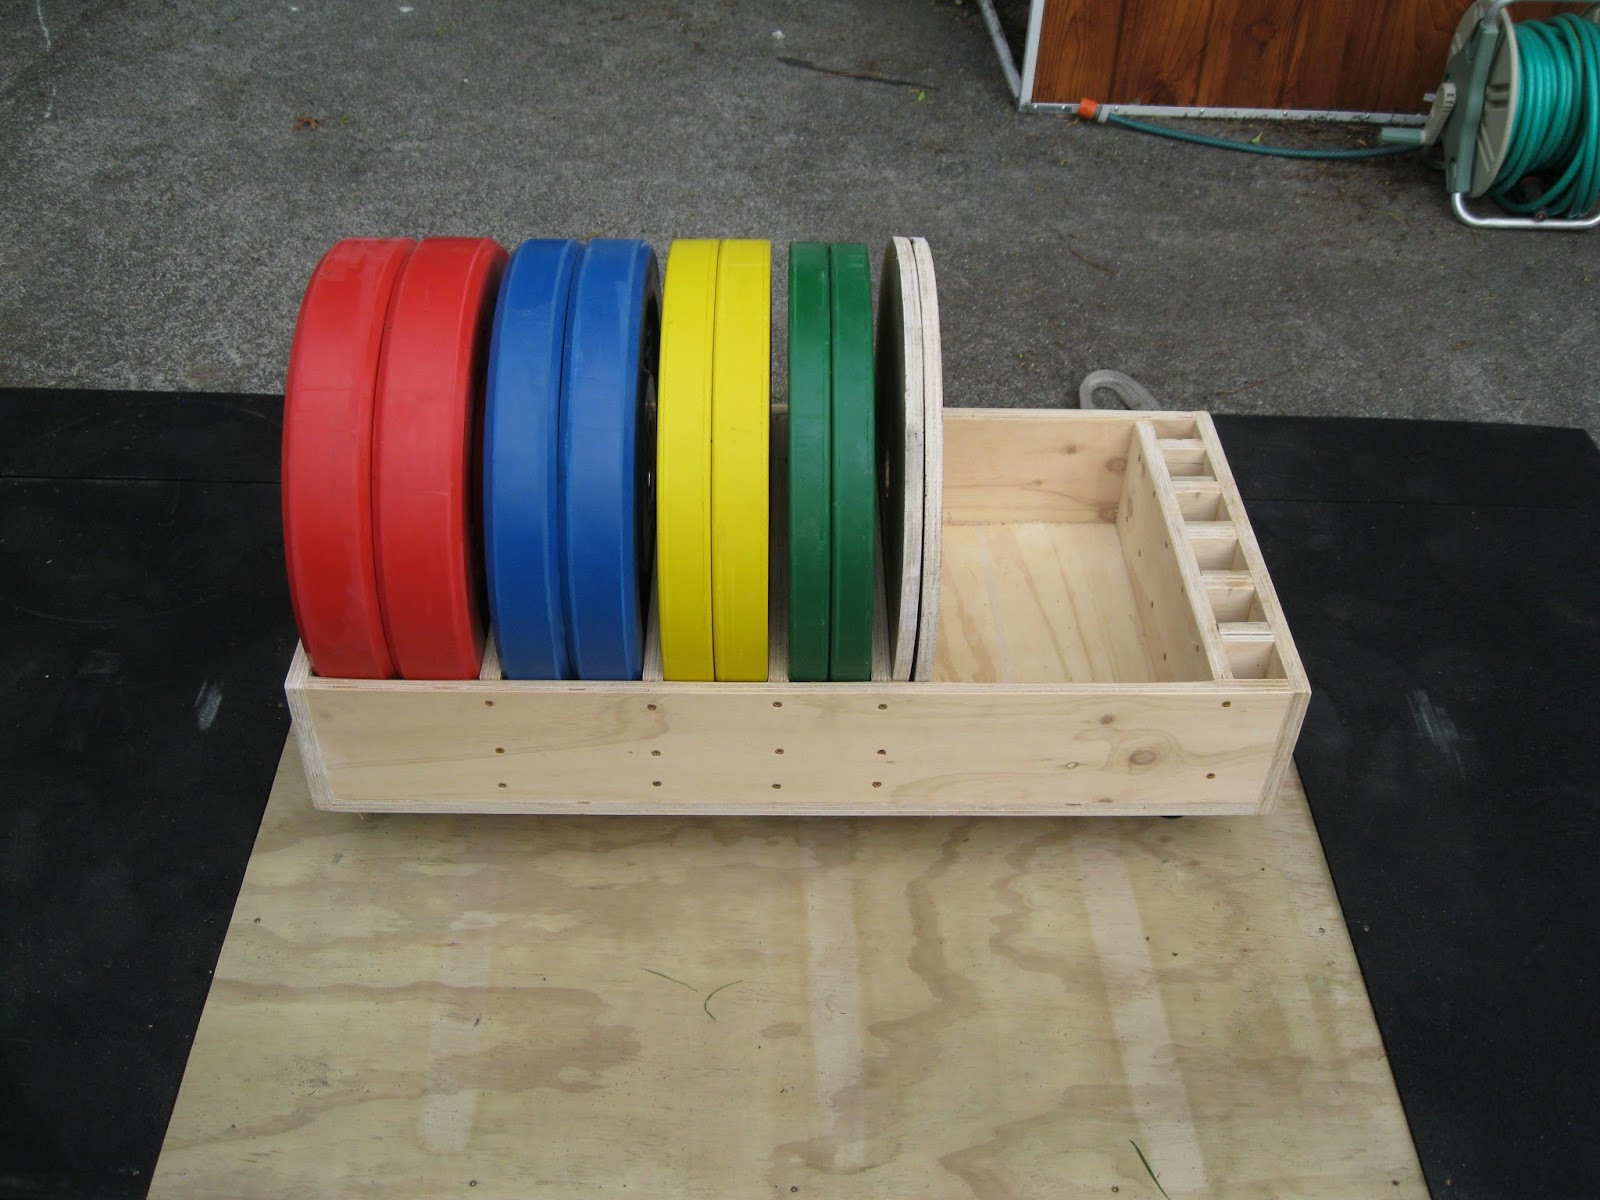 Best ideas about Bumper Plate Storage DIY . Save or Pin Back To Primal Rolling bumper plate storage Now.